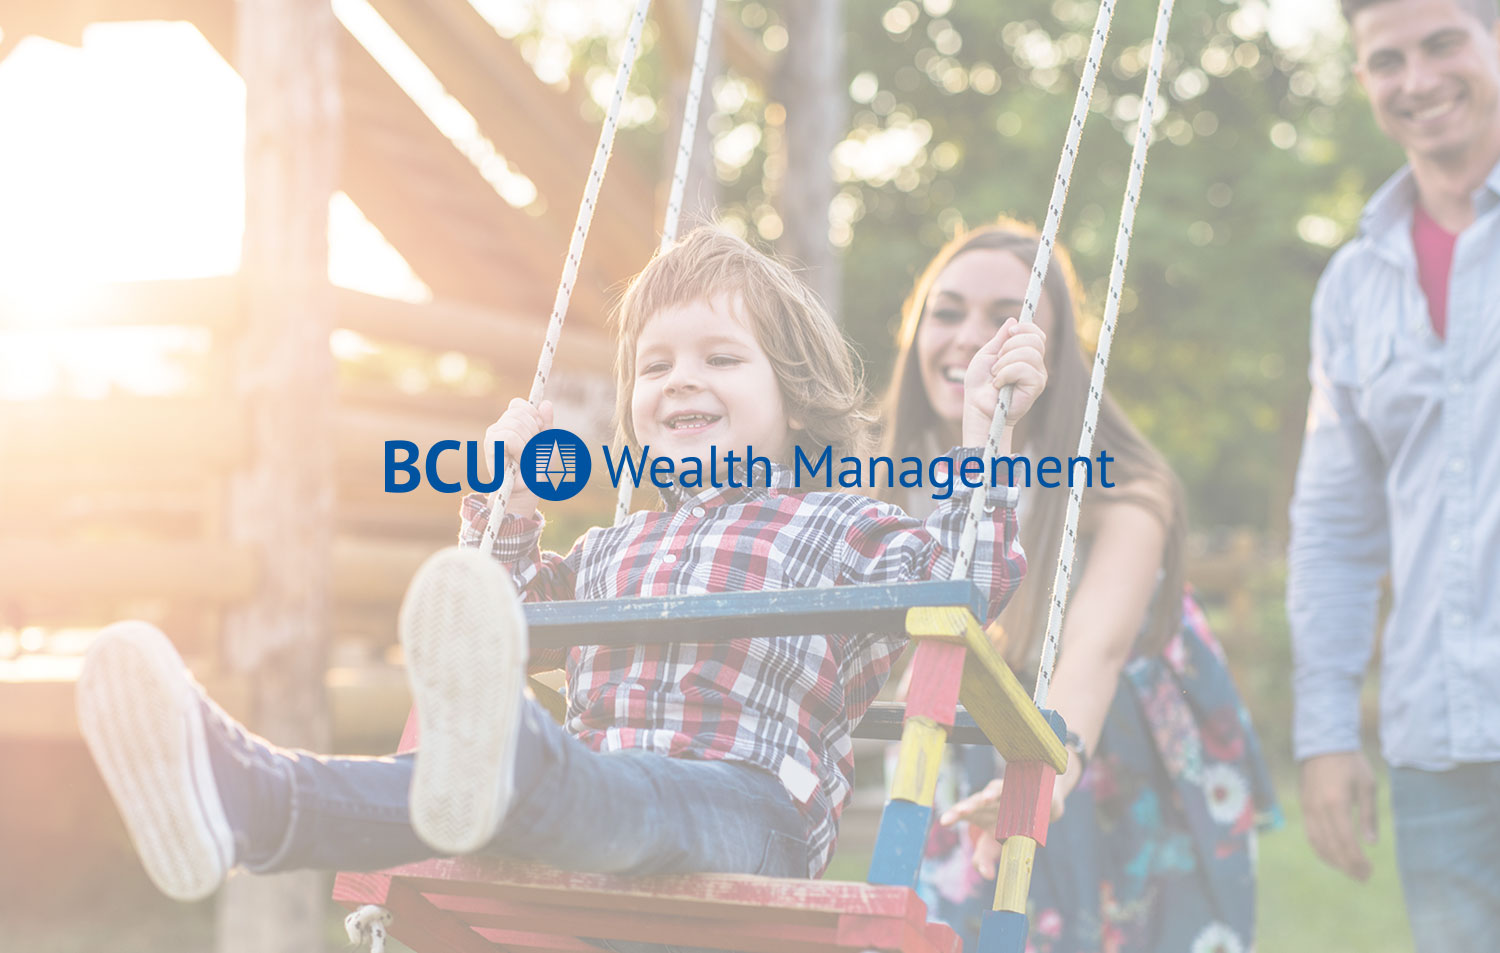 BCU Wealth Management